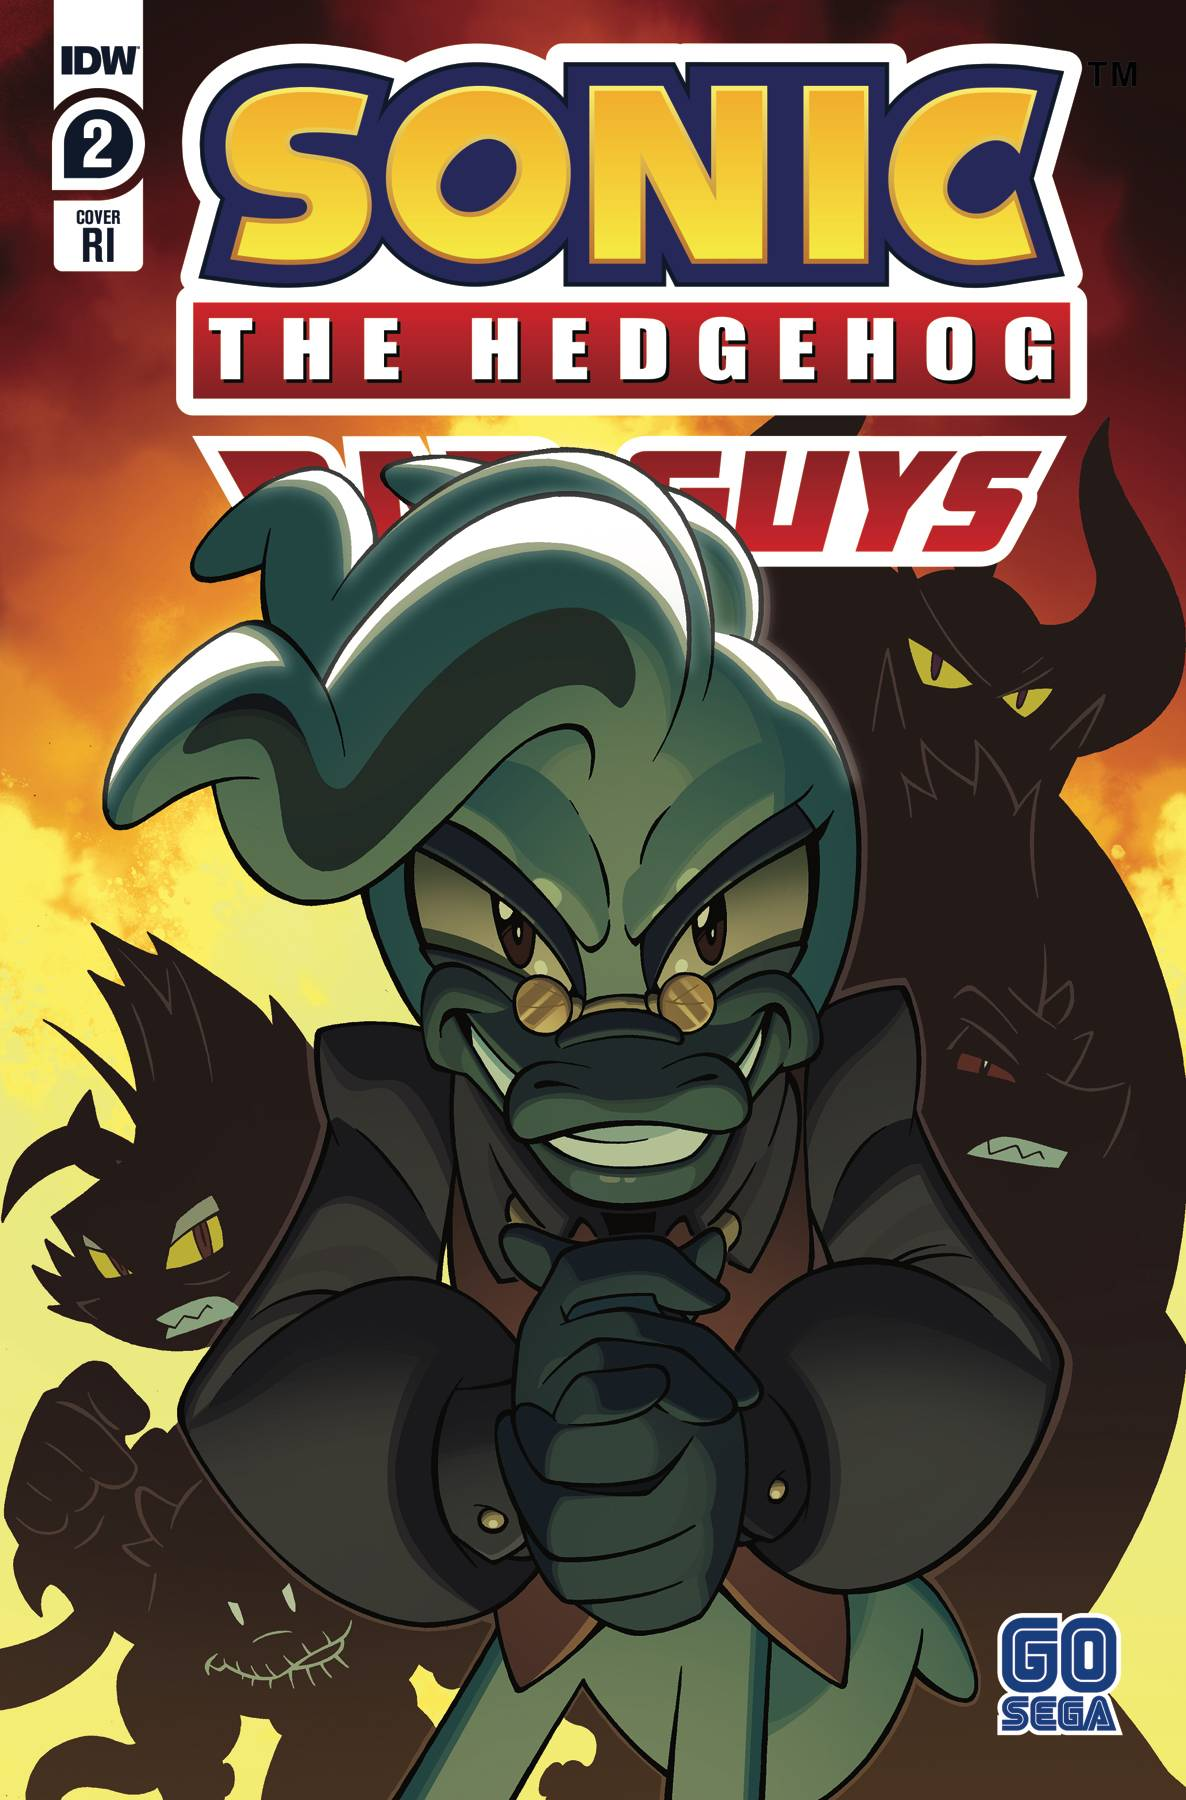 SONIC THE HEDGEHOG BAD GUYS #2 (OF 4) 10 COPY INCV LAWRENCE